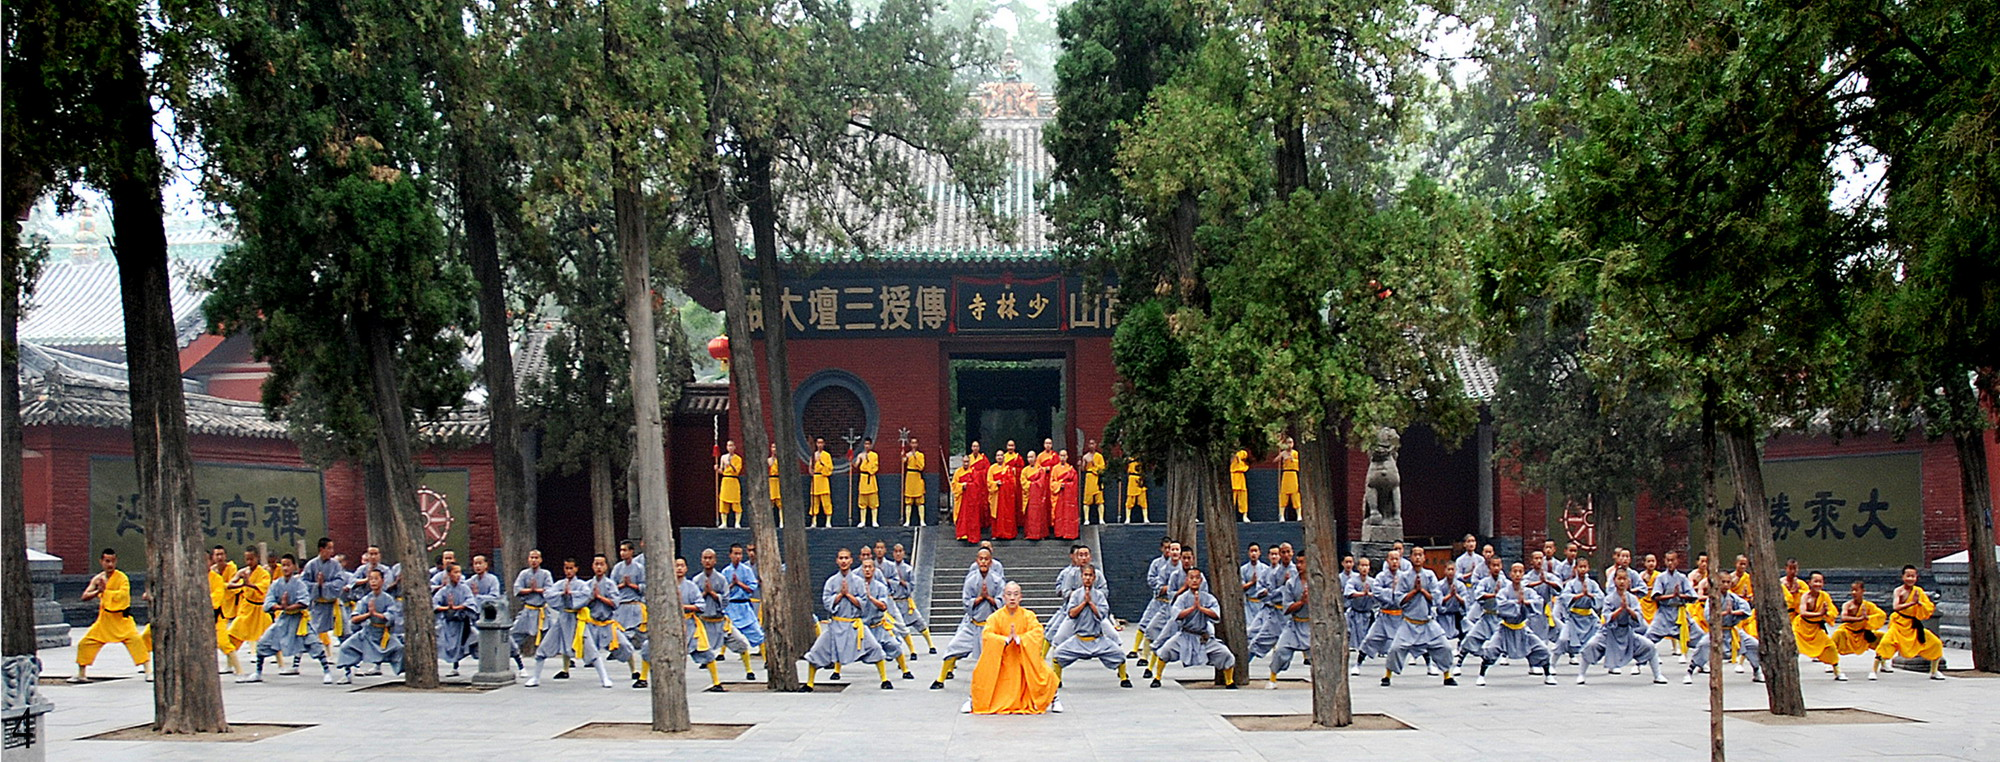 Photo courtesy of CTS (Dengfeng) Songshan Shaolin Culture Tourism Co.